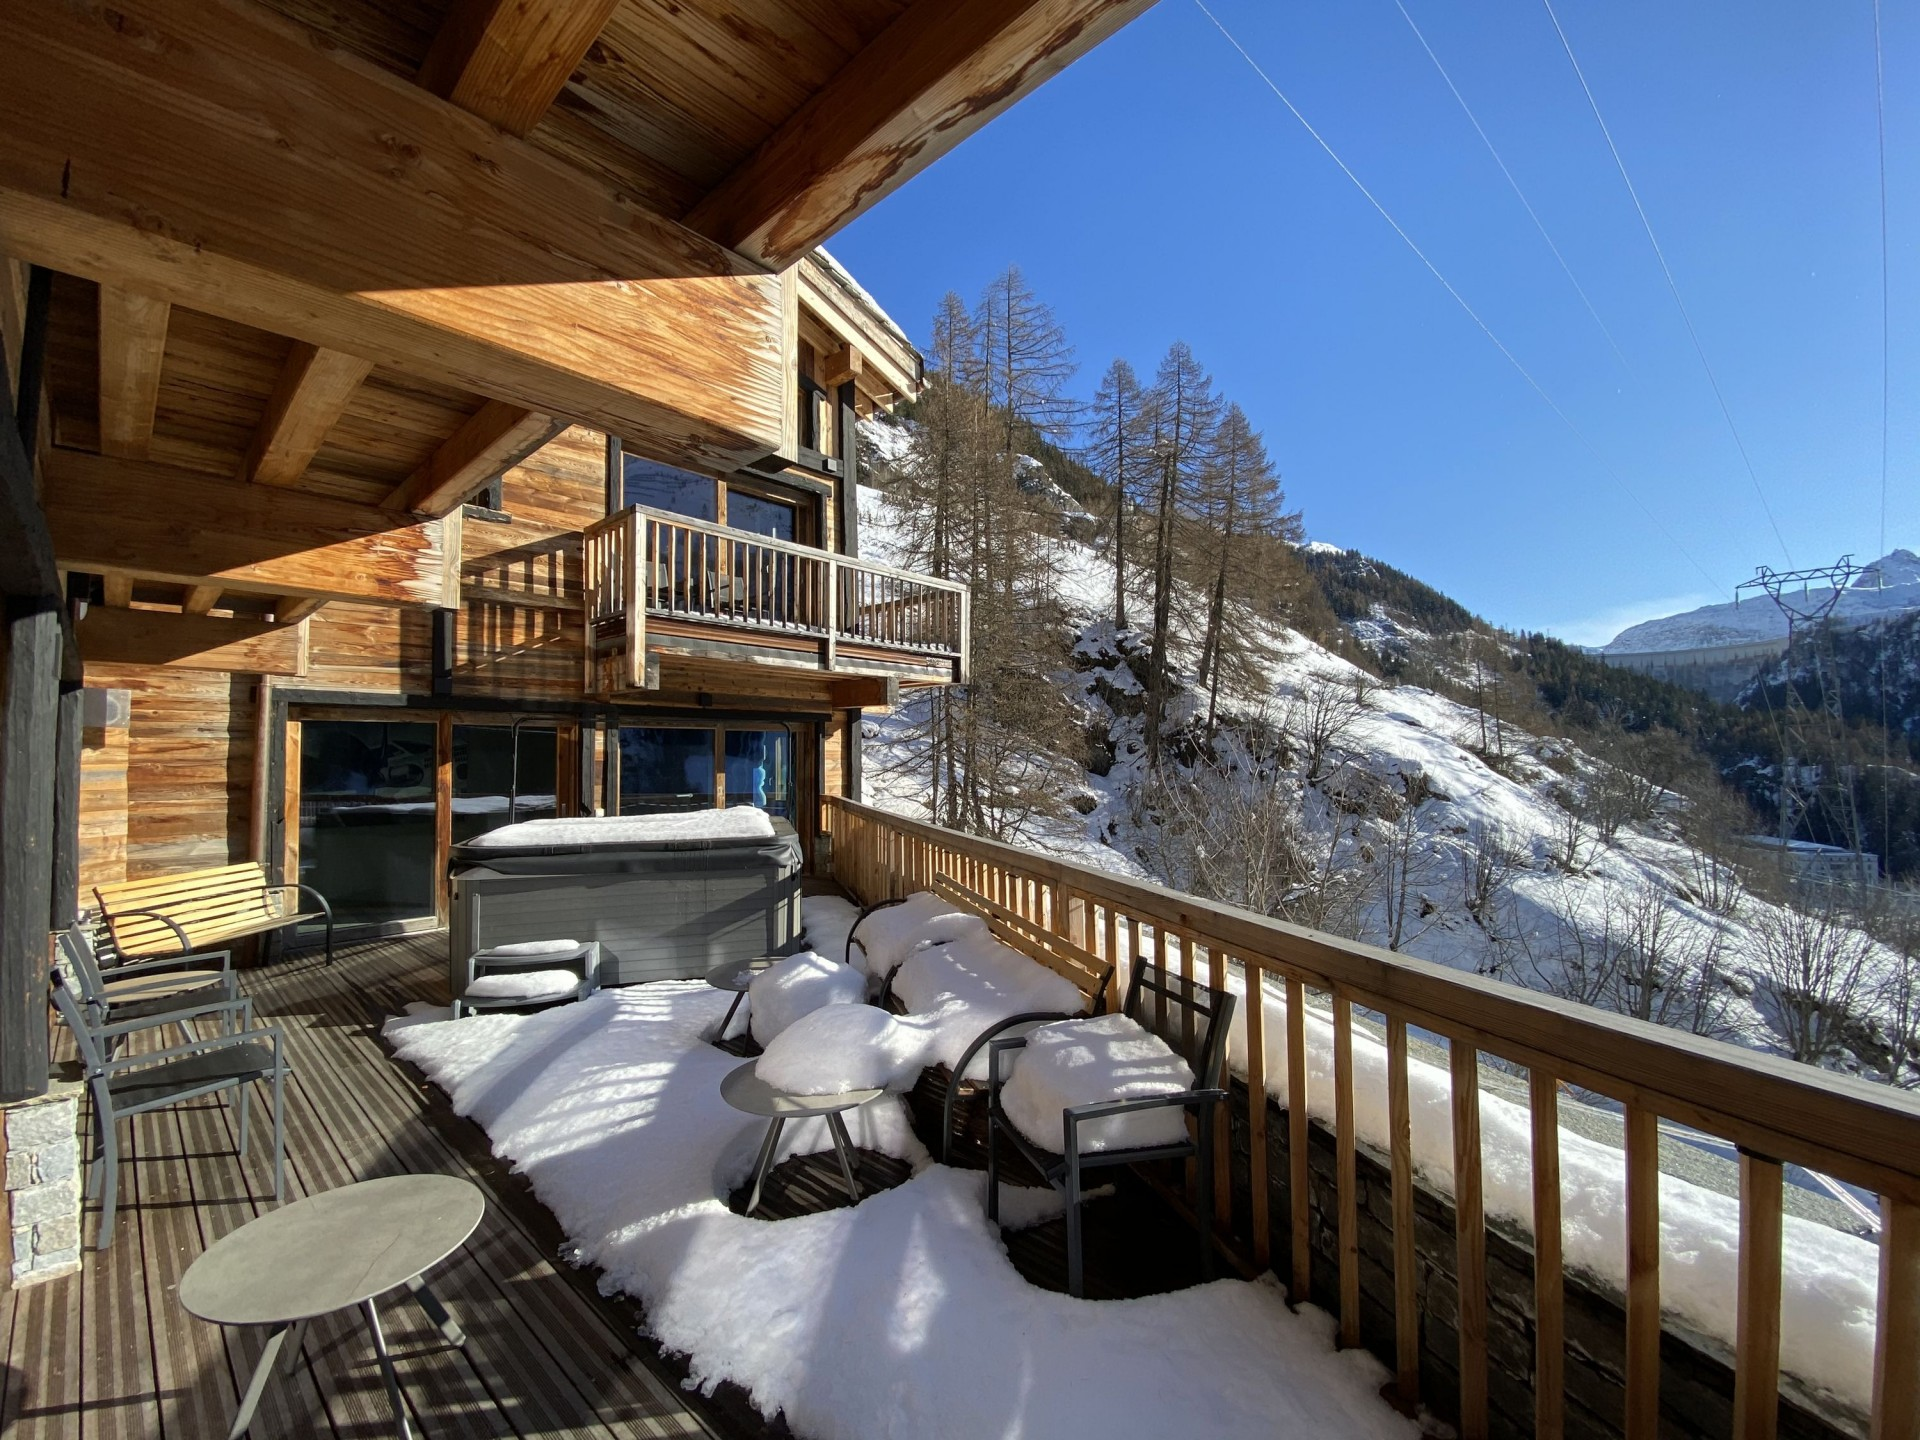 Tignes Location Chalet Luxe Turquoize Terrasse